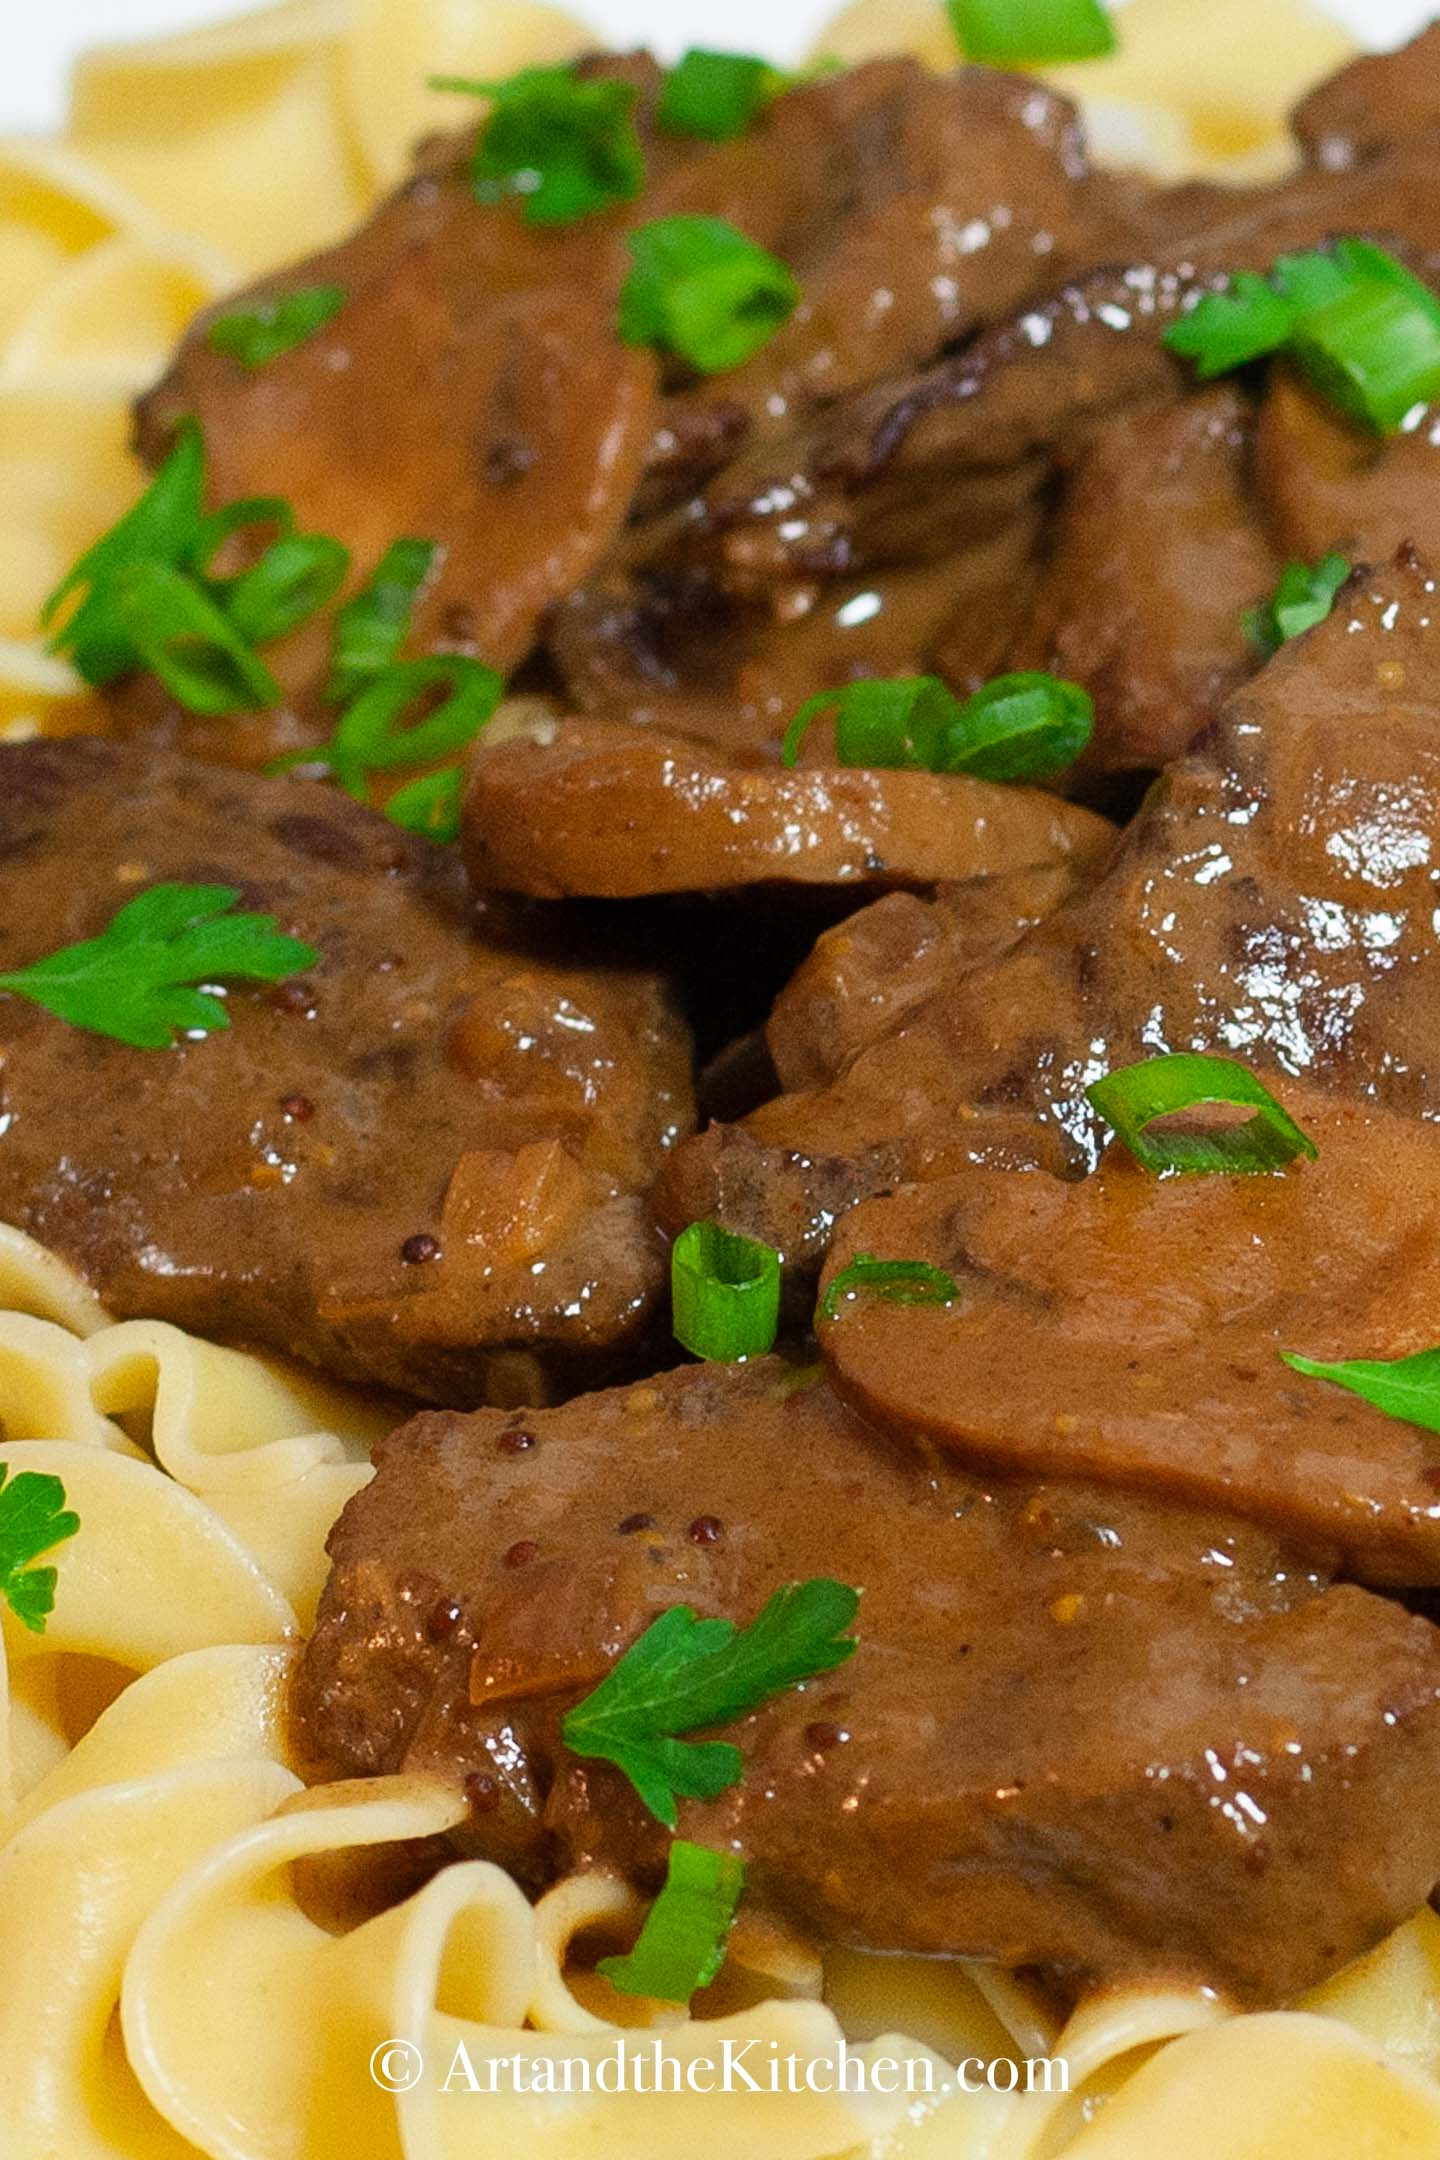 Beef stroganoff on bed of broad noodles, garnished with green onions.